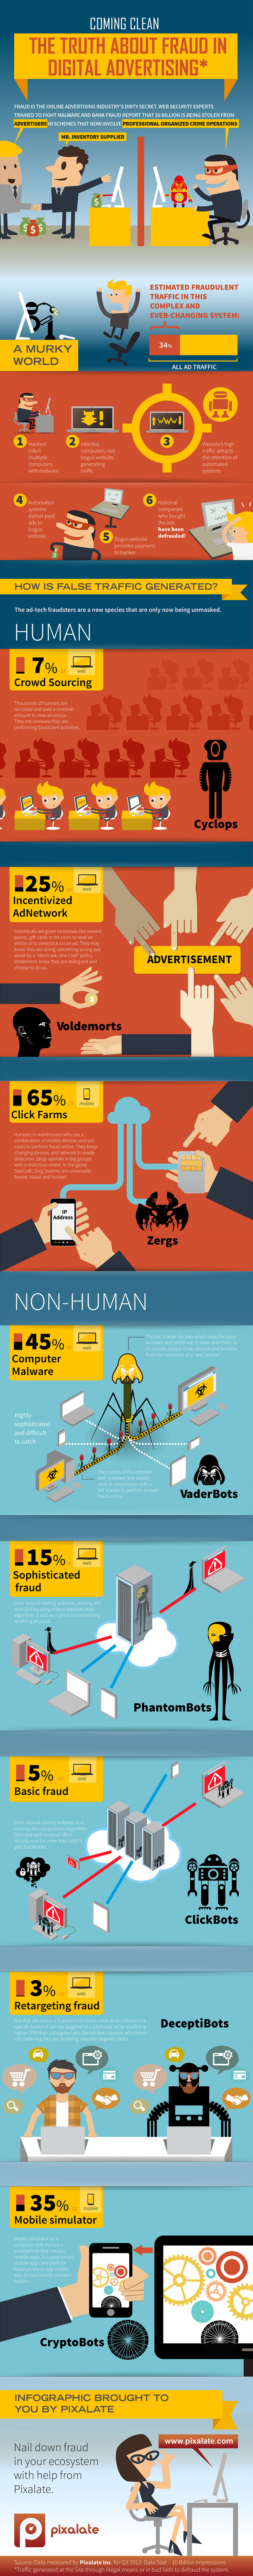 The Truth About Fraud in Digital Advertising Infographic